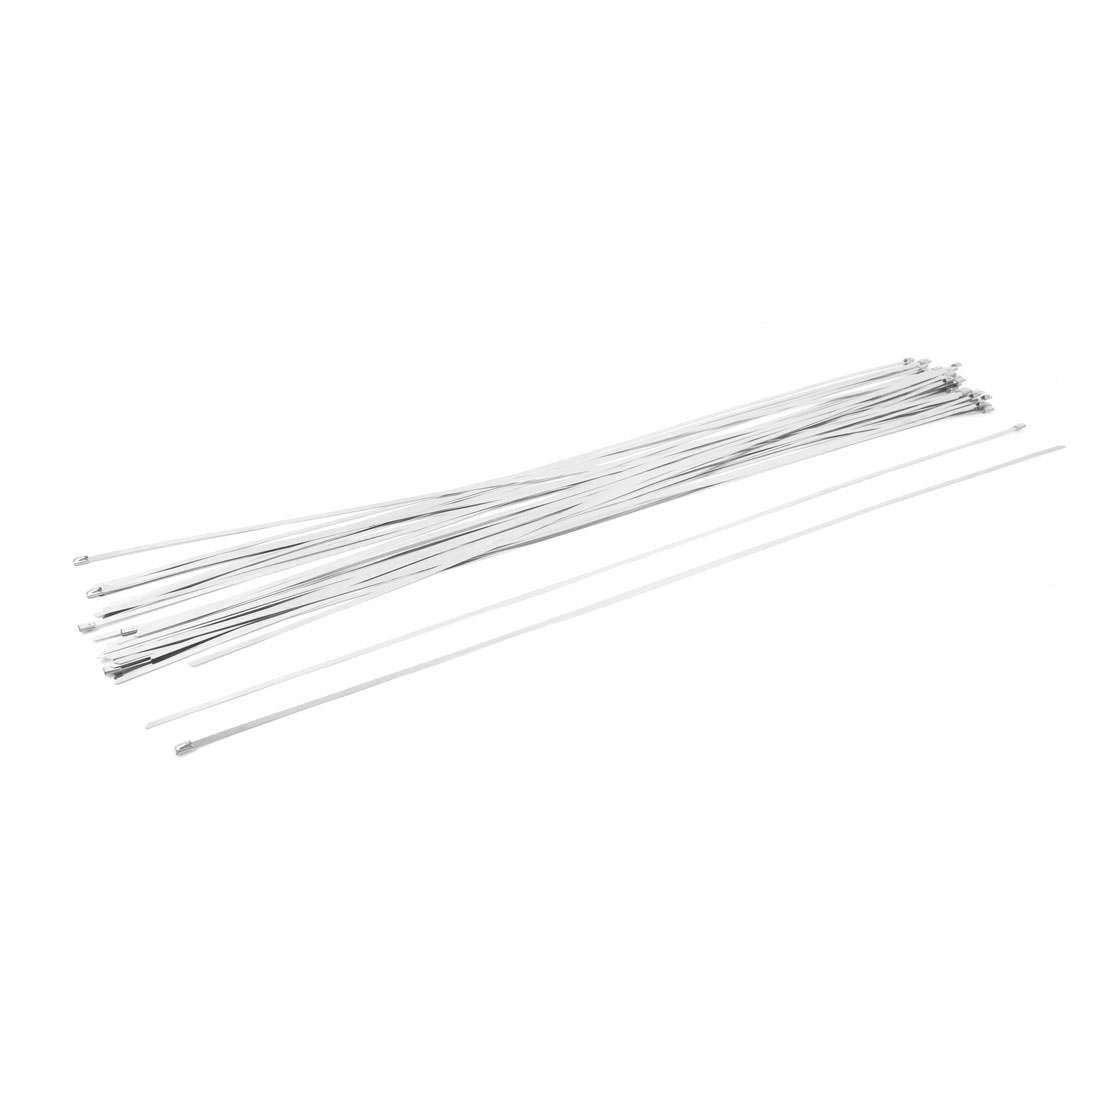 4.6mm Wide Stainless Steel Sprayed Cable Tie 1000mm 50 PCS